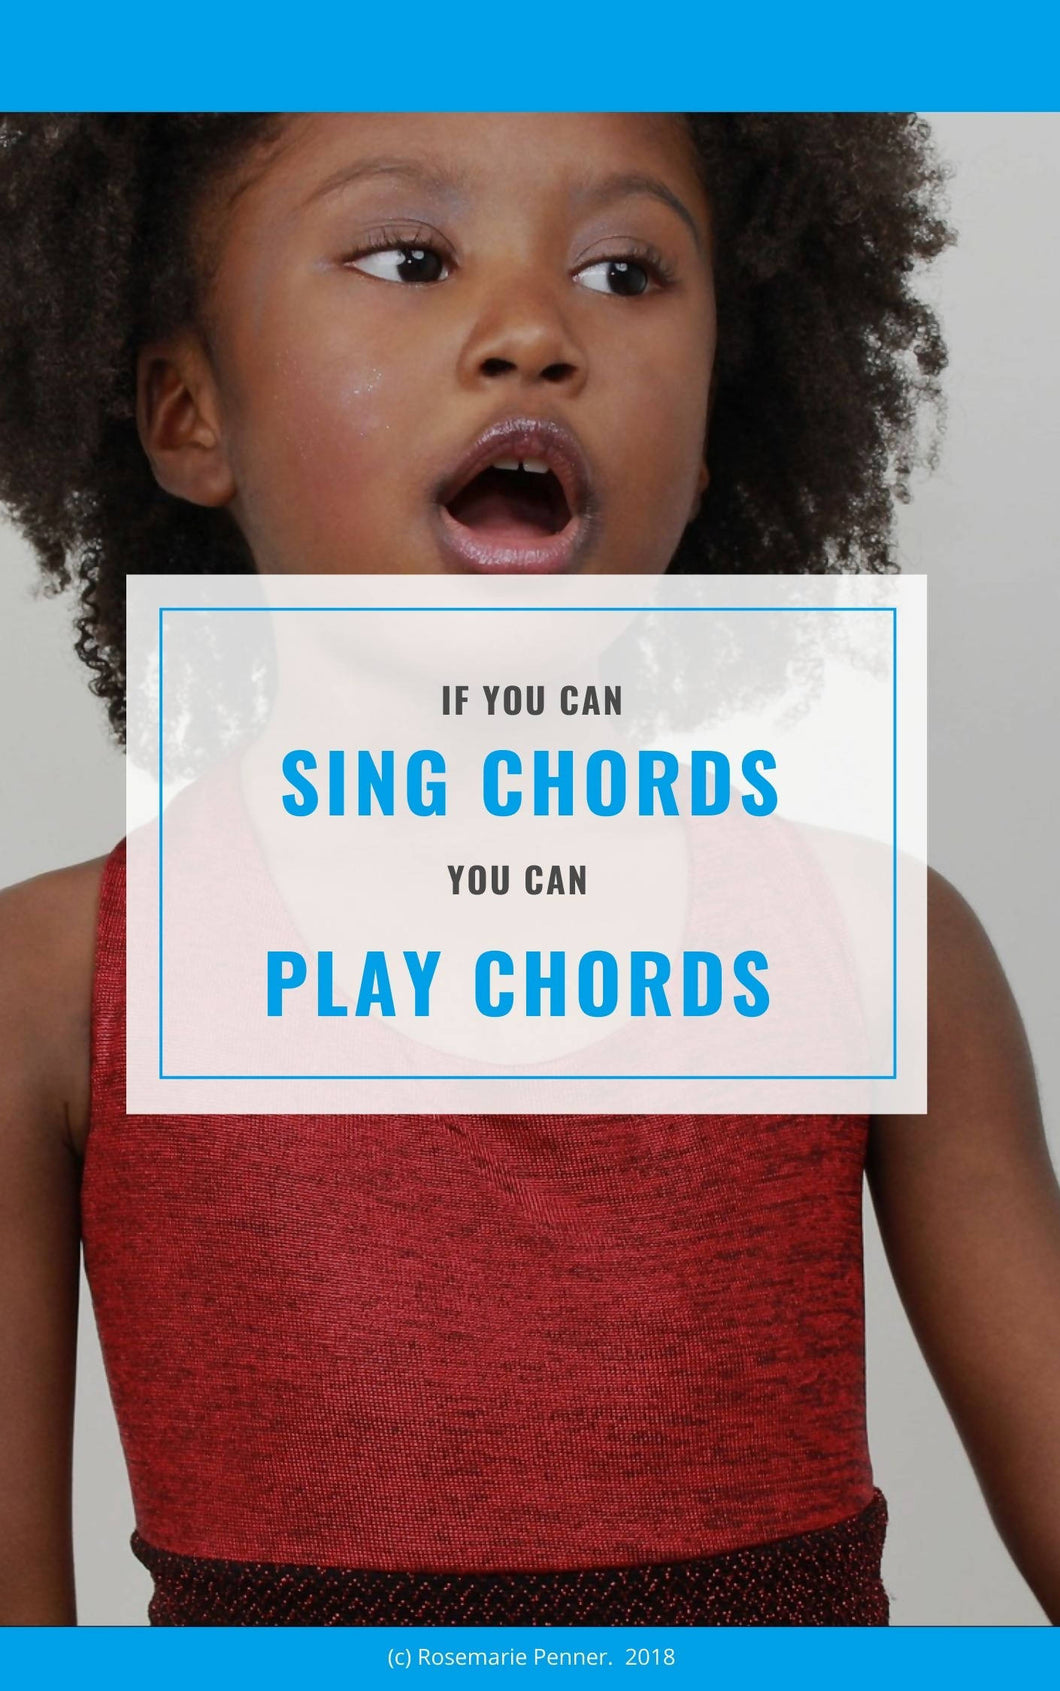 If You Can Sing Chords, You Can Play Chords